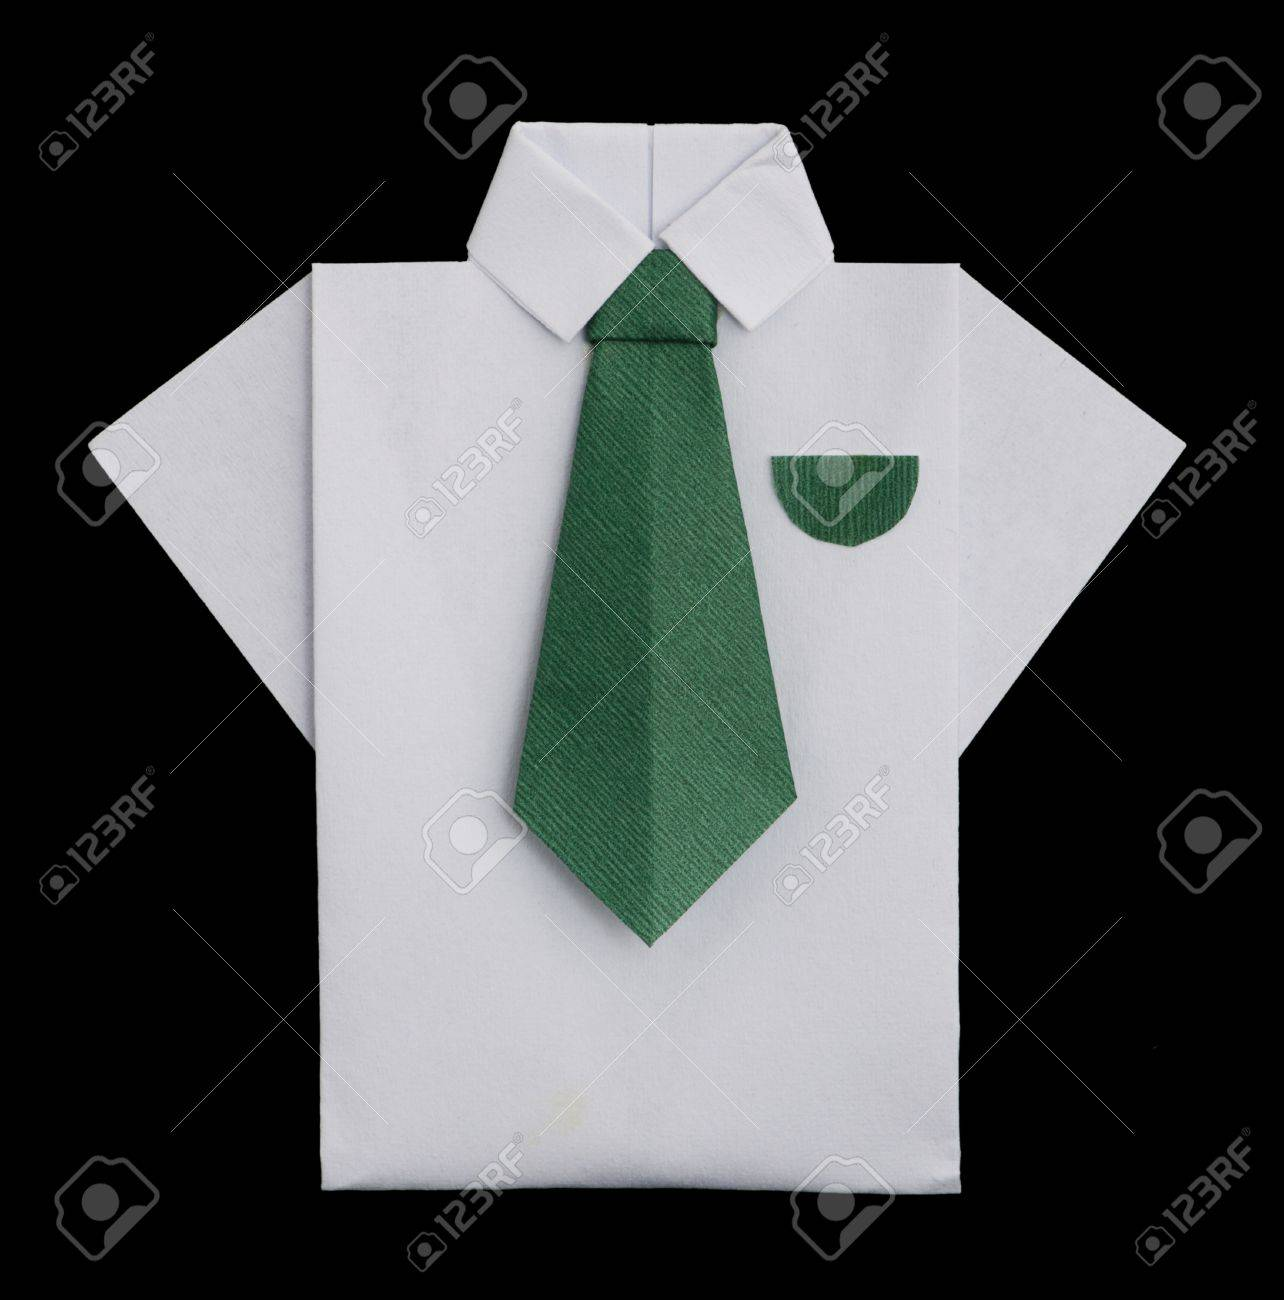 Isolated paper made white shirt with green tielded origami isolated paper made white shirt with green tielded origami style stock photo 16317667 jeuxipadfo Gallery